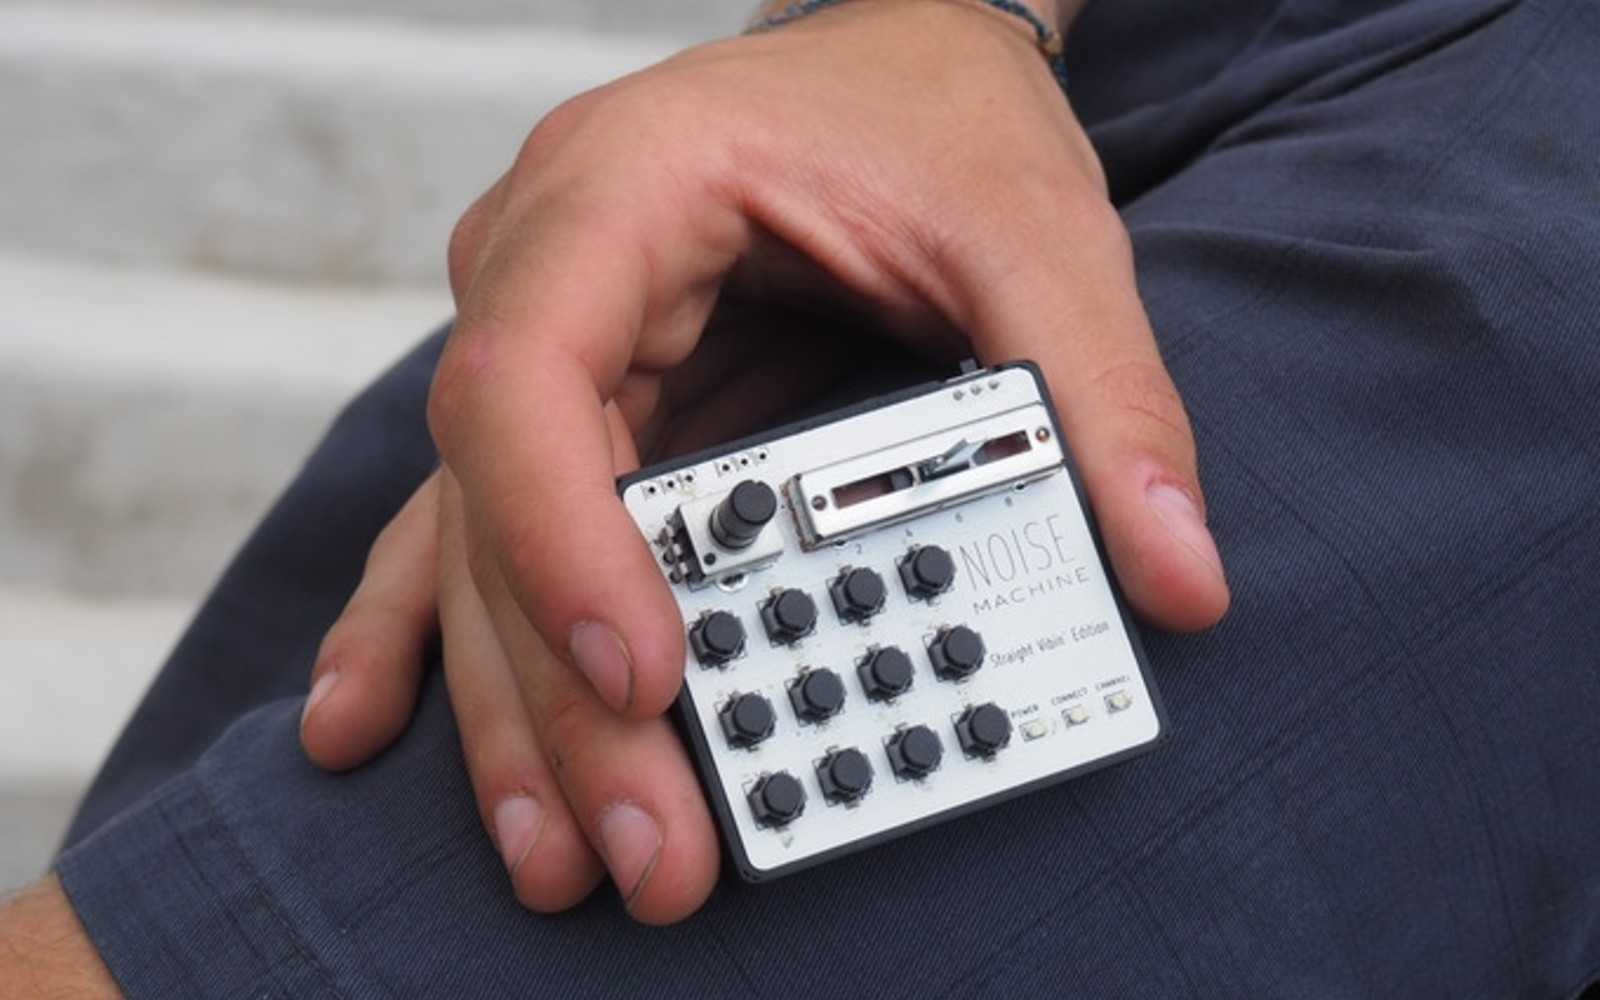 Noise Machine is a tiny MIDI controller for creating music on the go | DeviceDaily.com